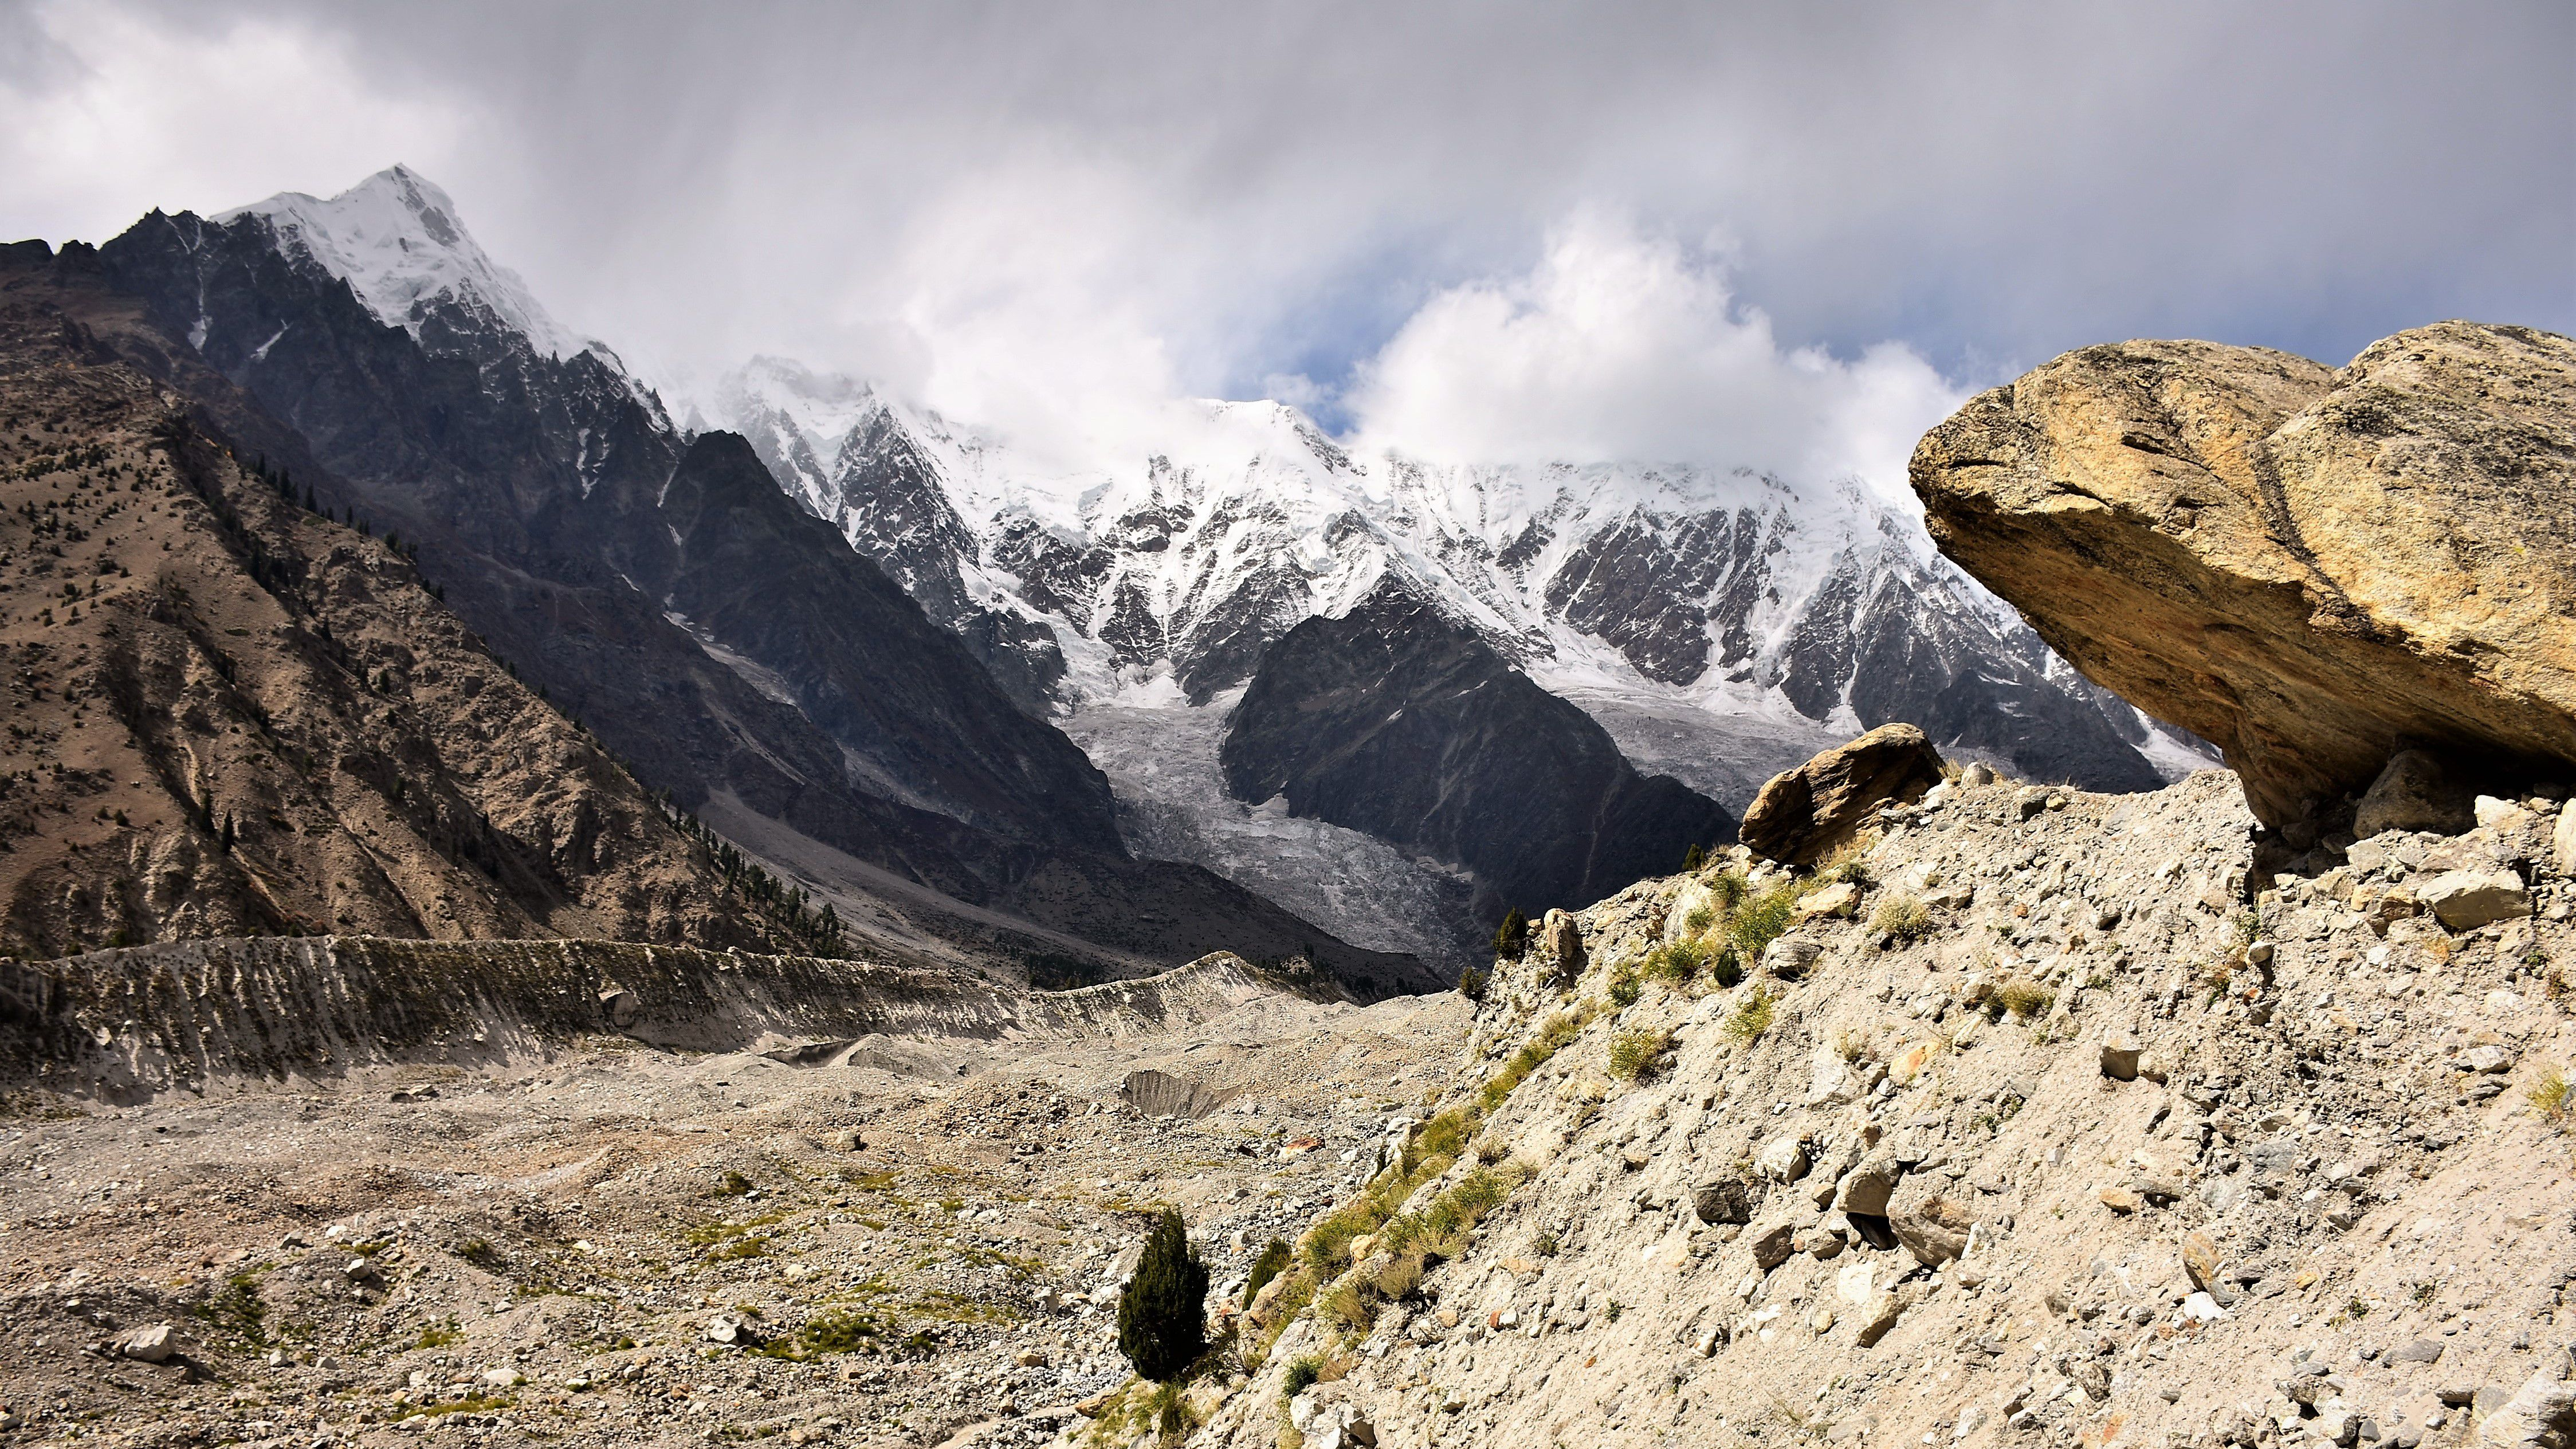 Passage to the mount Nanga Parbat